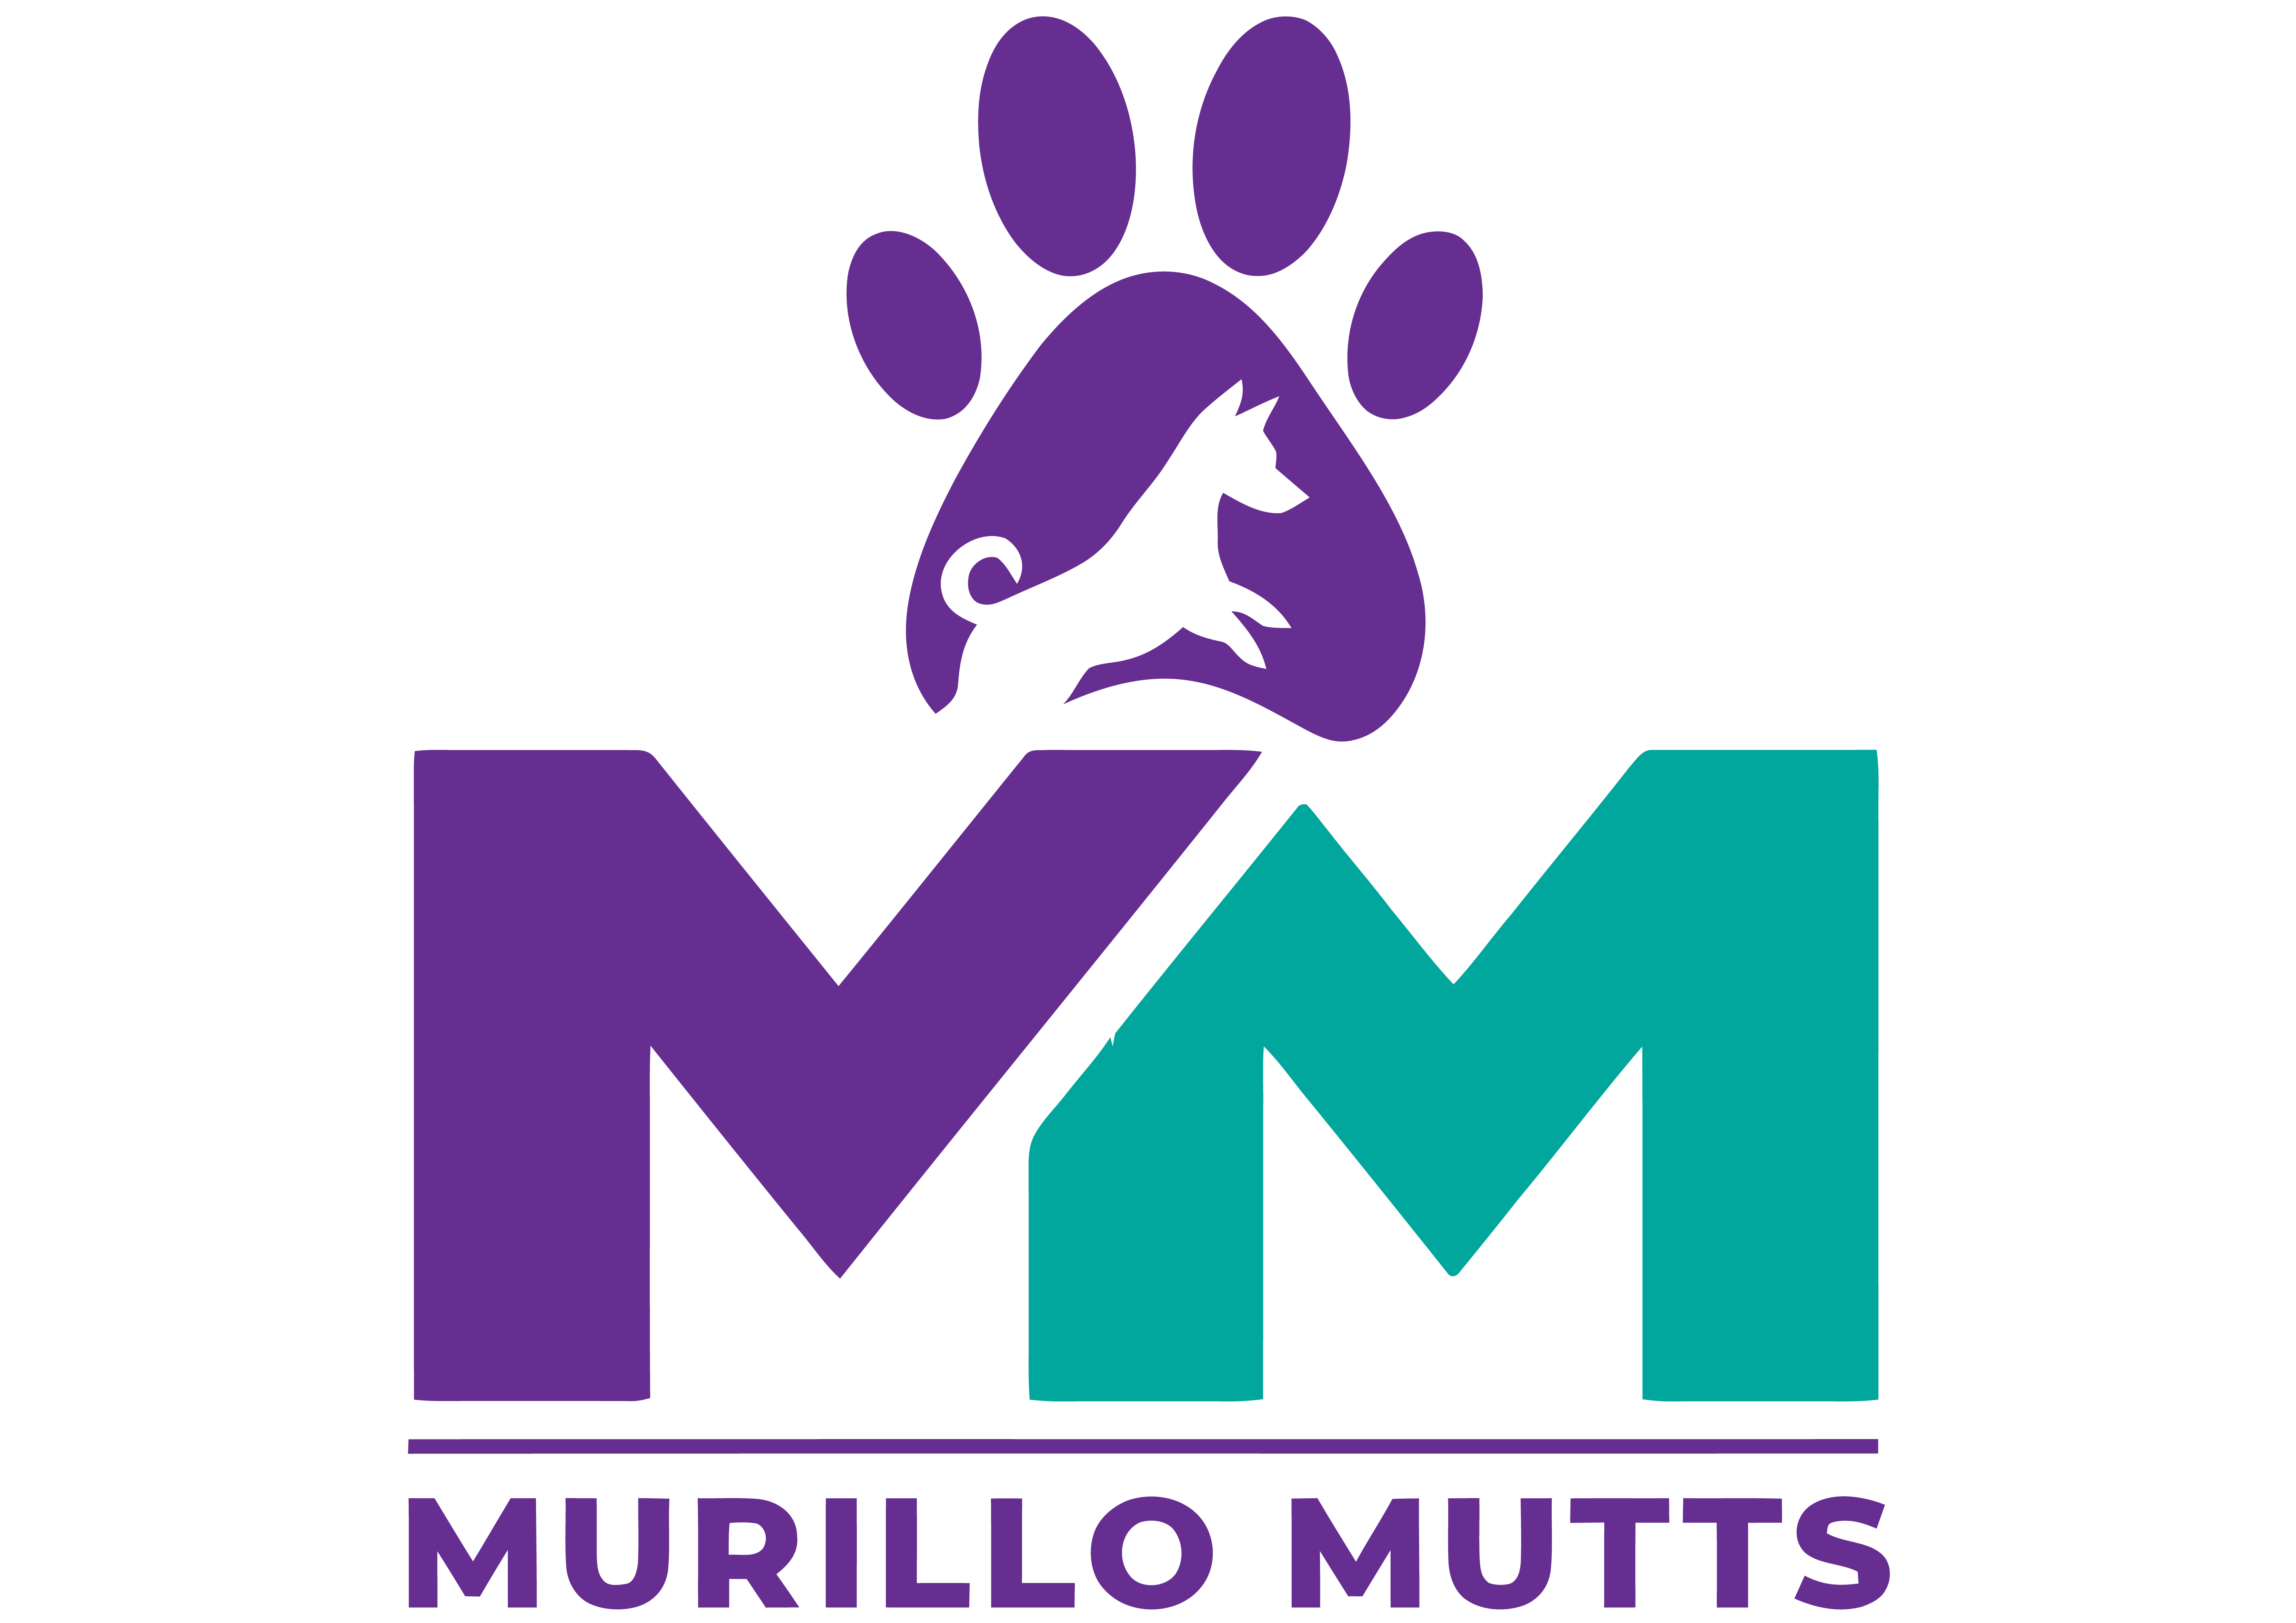 Murillo Mutts